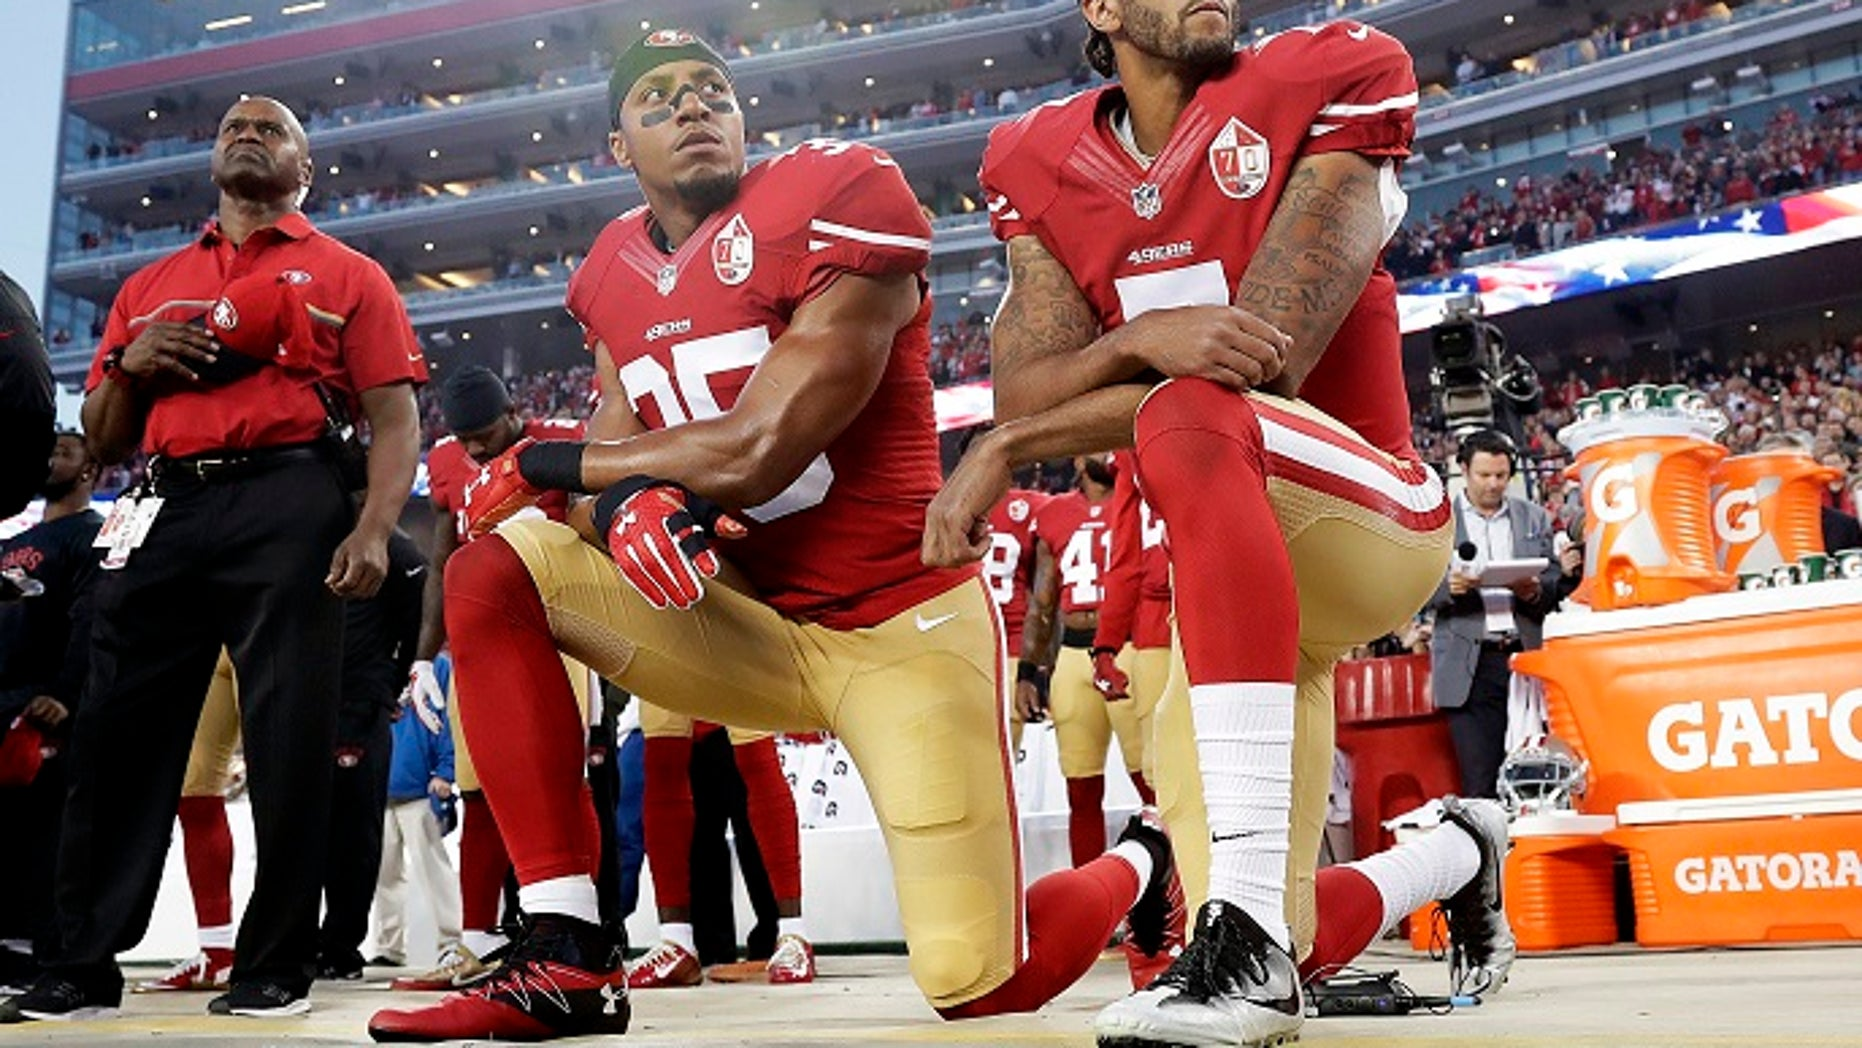 In this Monday, Sept. 12, 2016, file photo, San Francisco 49ers safety Eric Reid (35) and quarterback Colin Kaepernick (7) kneel during the national anthem before a game against the Los Angeles Rams in Santa Clara, Calif.